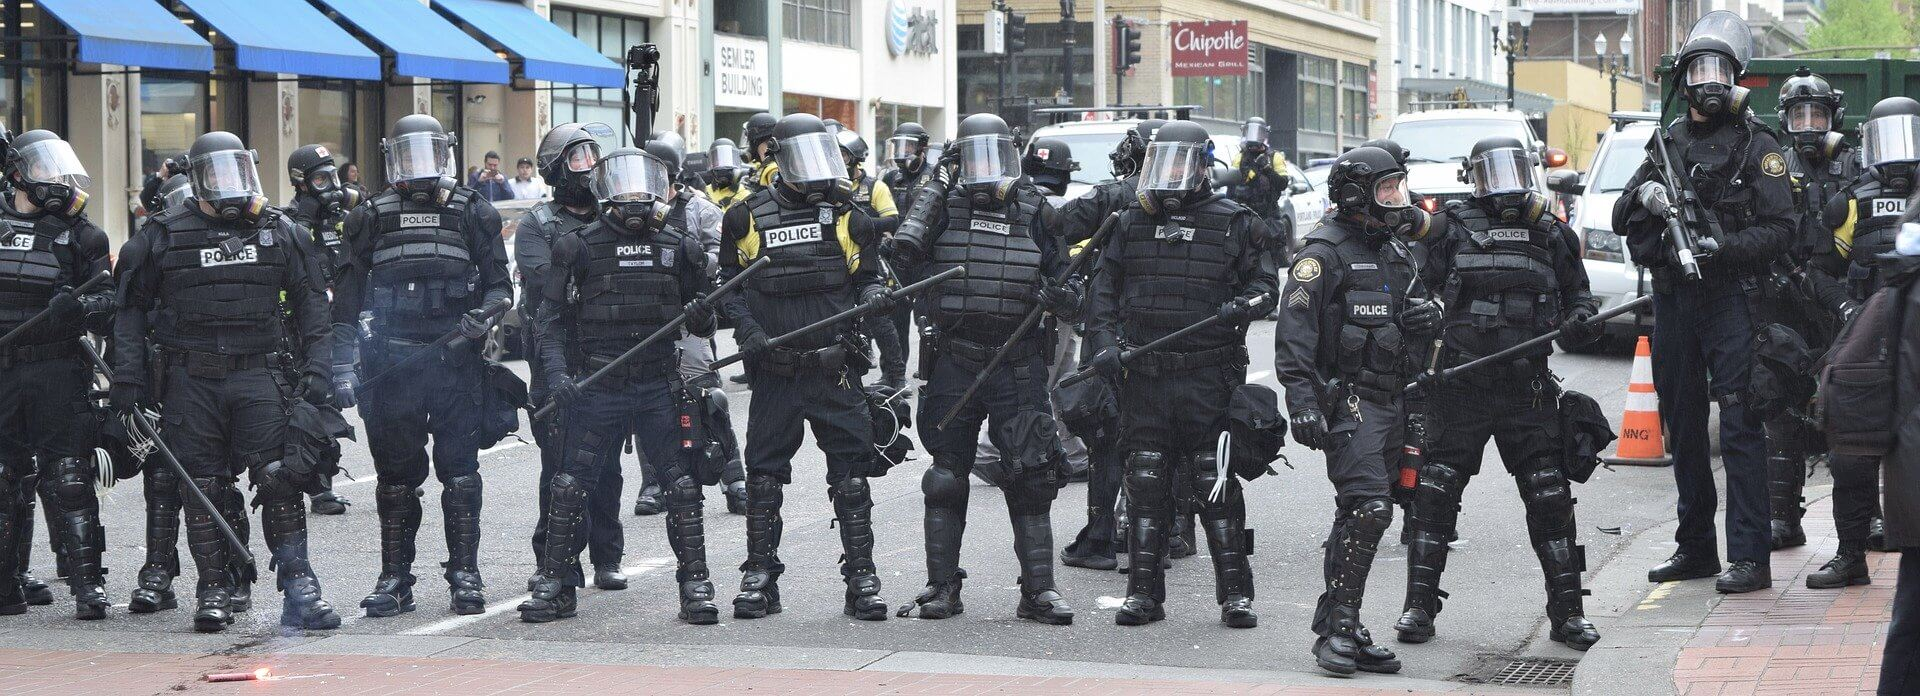 Police form ranks to break up protests in Portland, Or